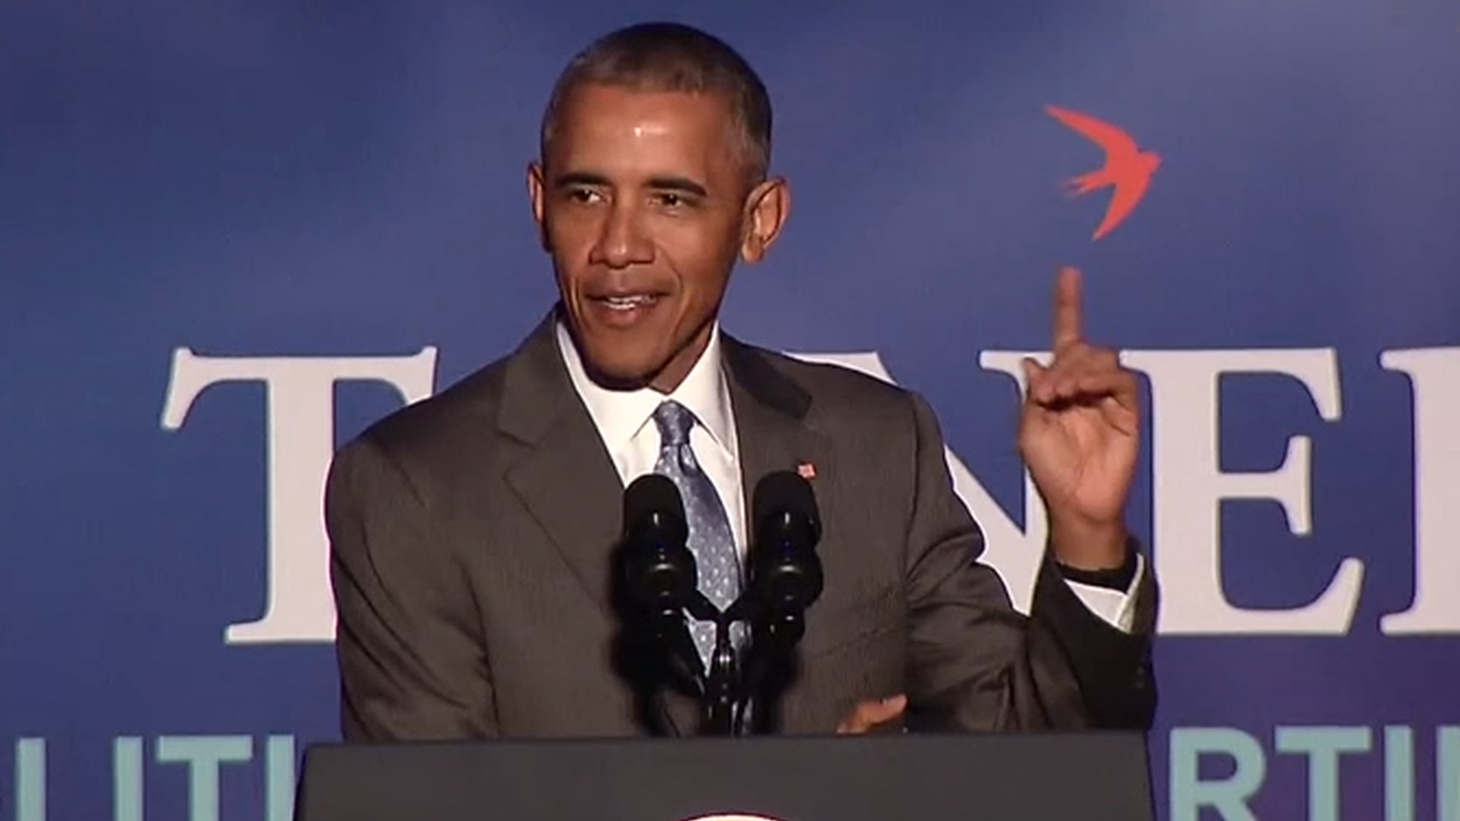 During every presidency, relations between the news media and the White House are subject to strain. At an awards dinner for political reporters last night, President Obama had some  pointed comments  about the current state of journalism -- especially when it comes to this year's presidential campaign. We hear the latest example.